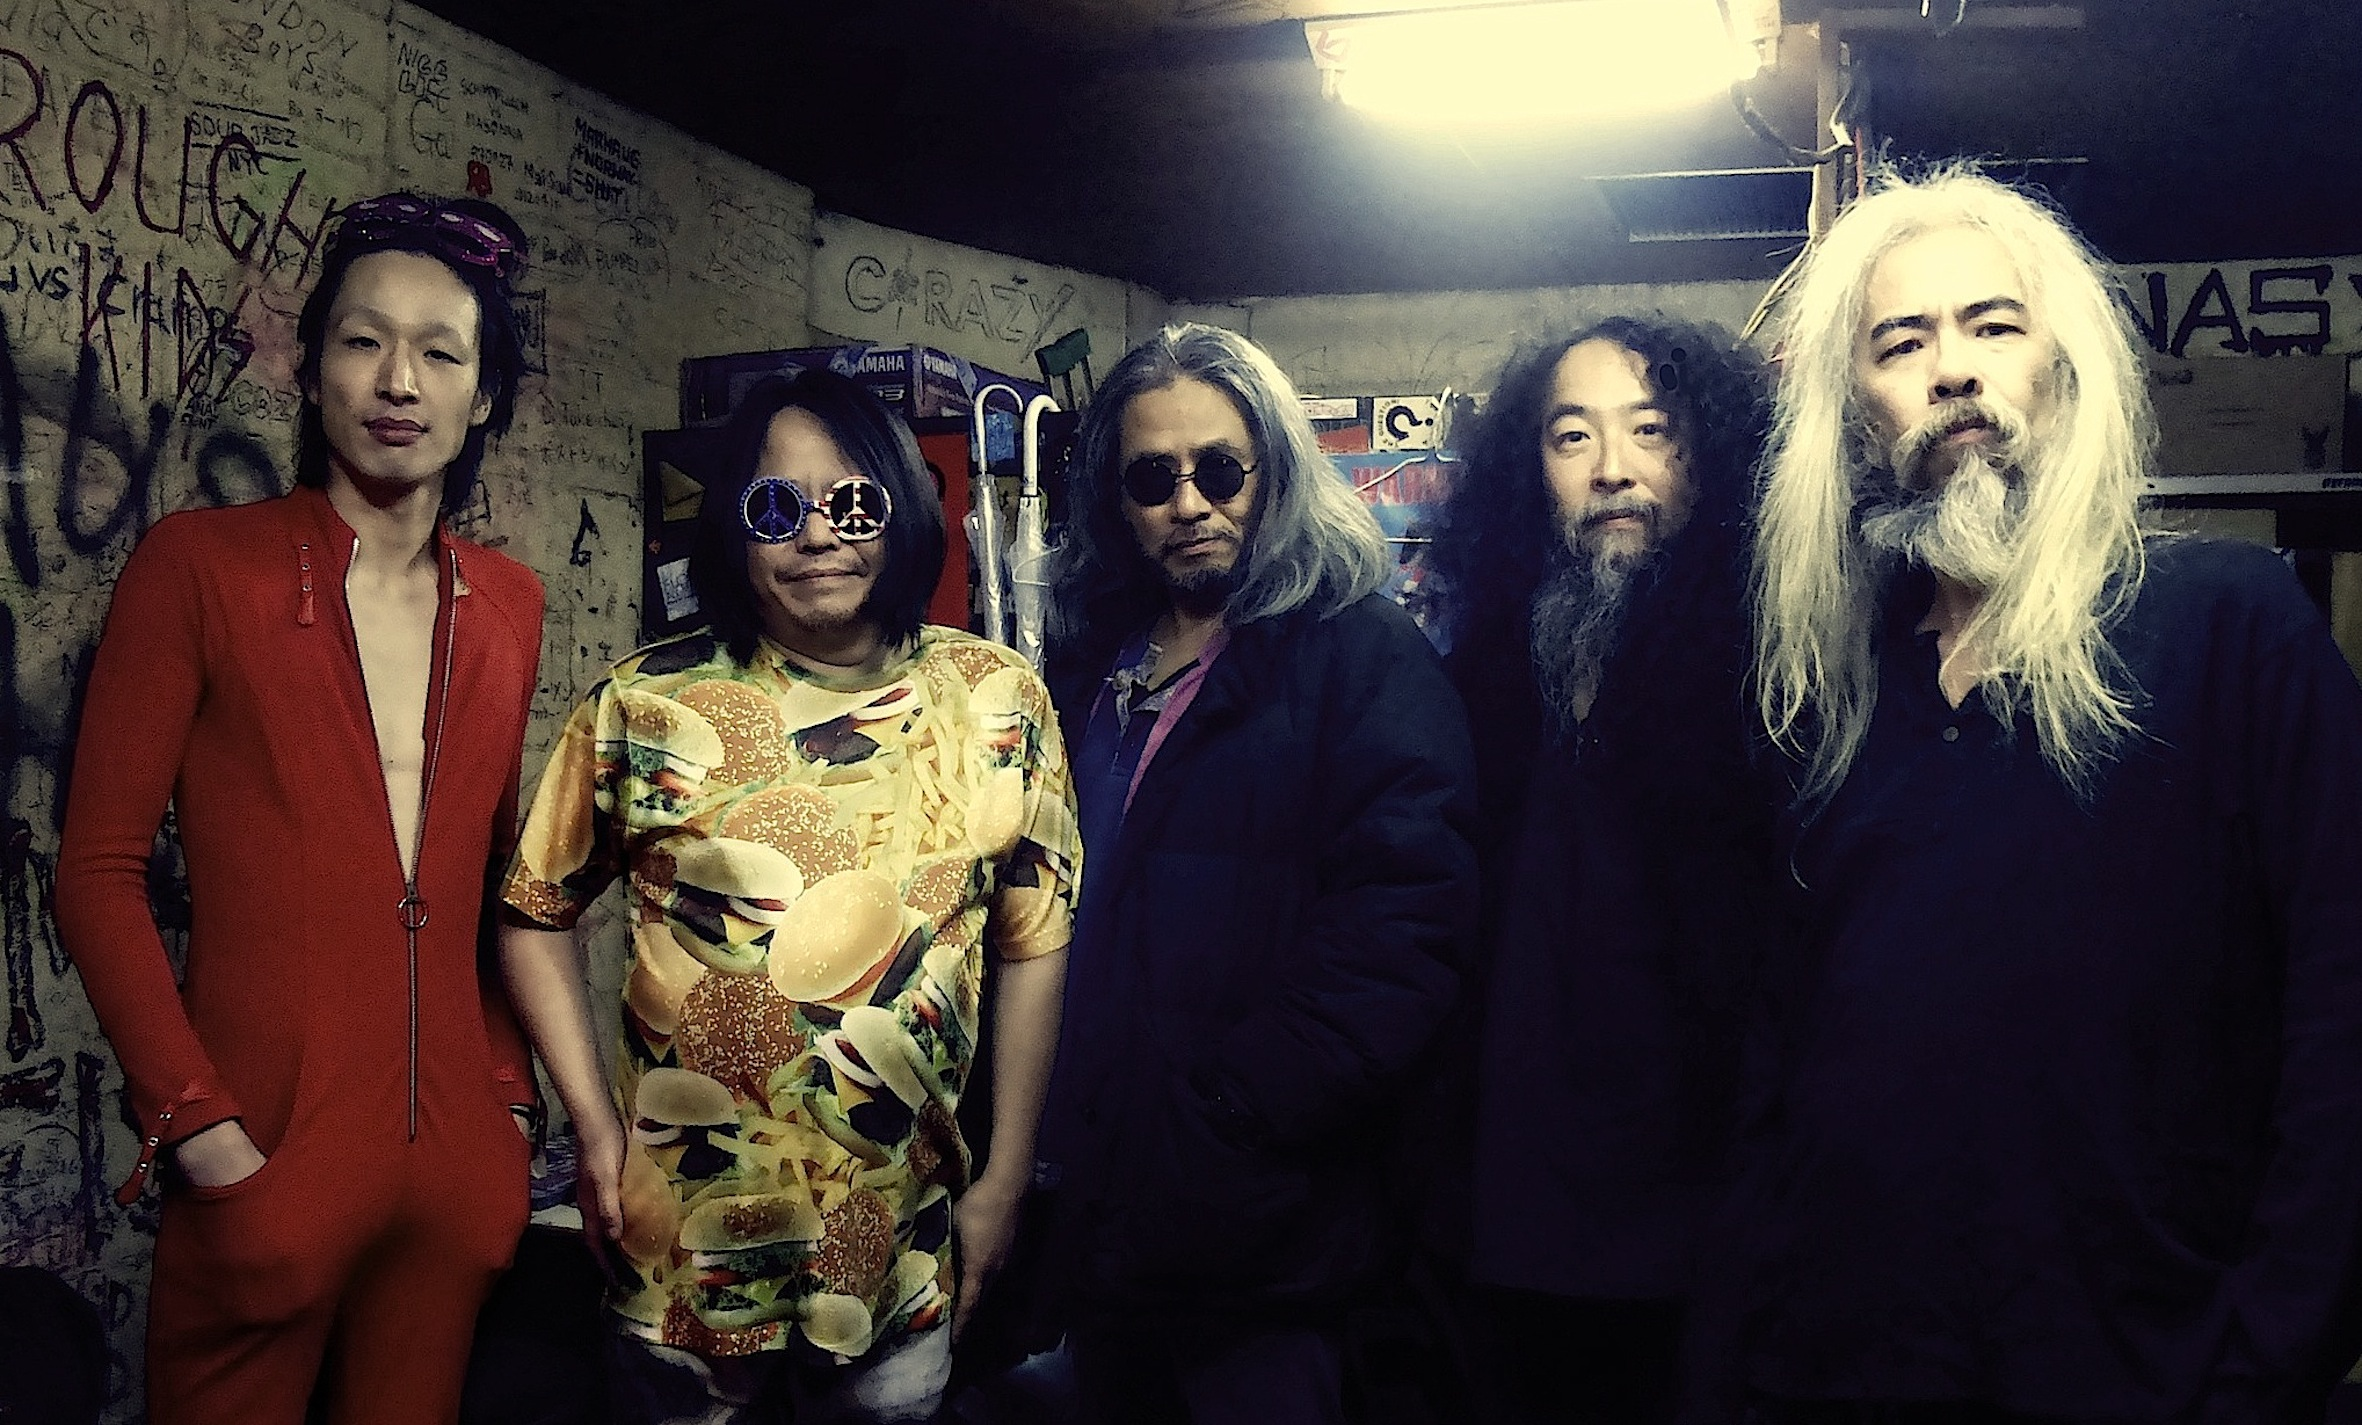 02.10.17 ACID MOTHERS TEMPLE